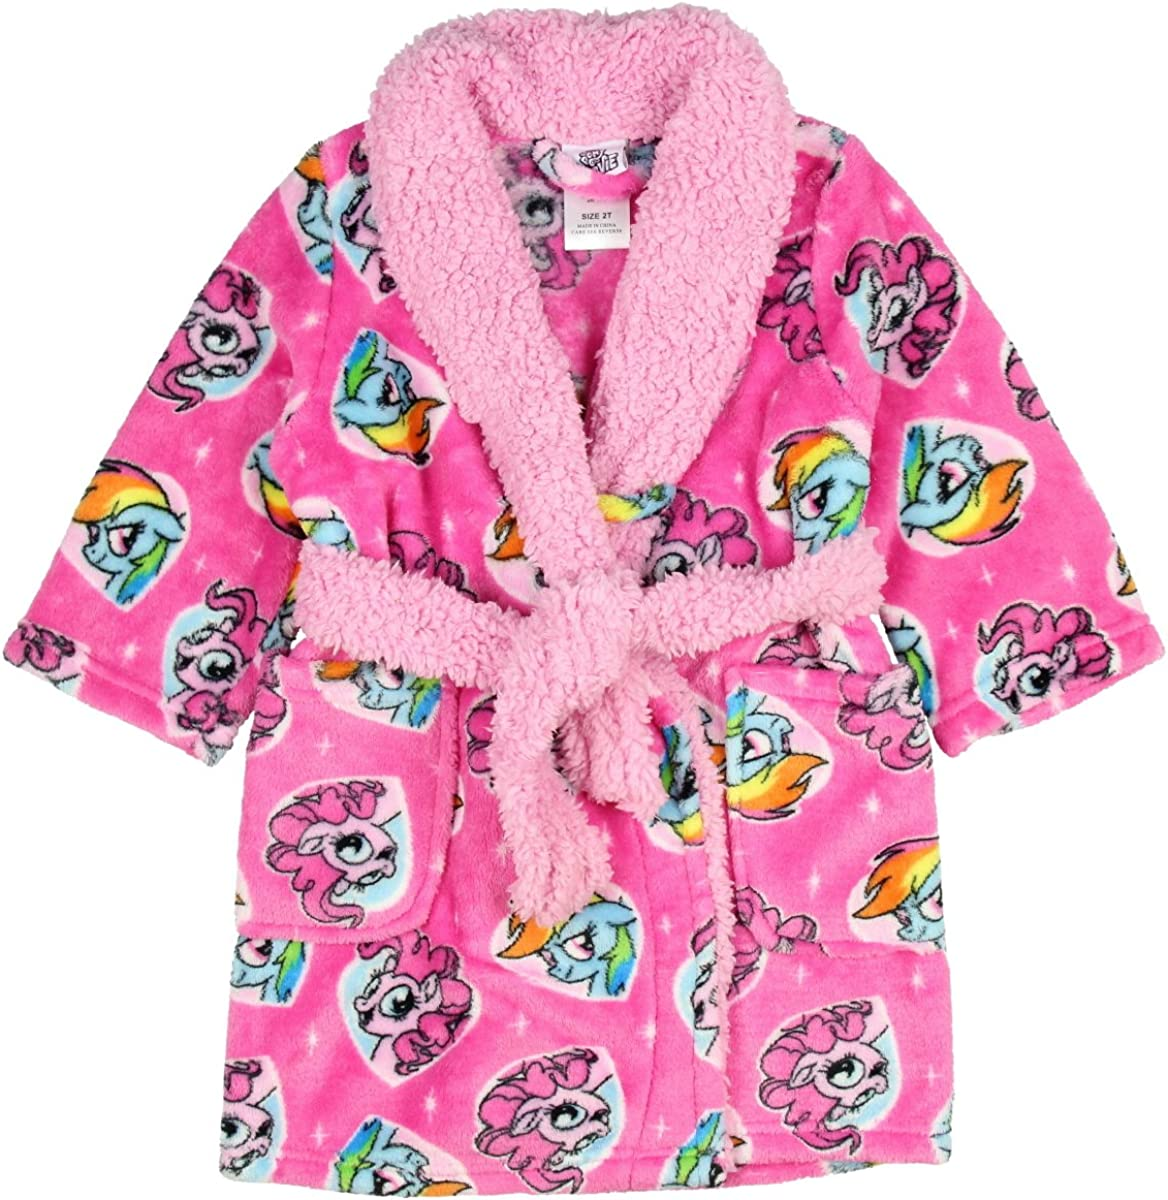 AME My Little Pony discount The Complete Free Shipping Girls' Luxe Movie Plush Robe